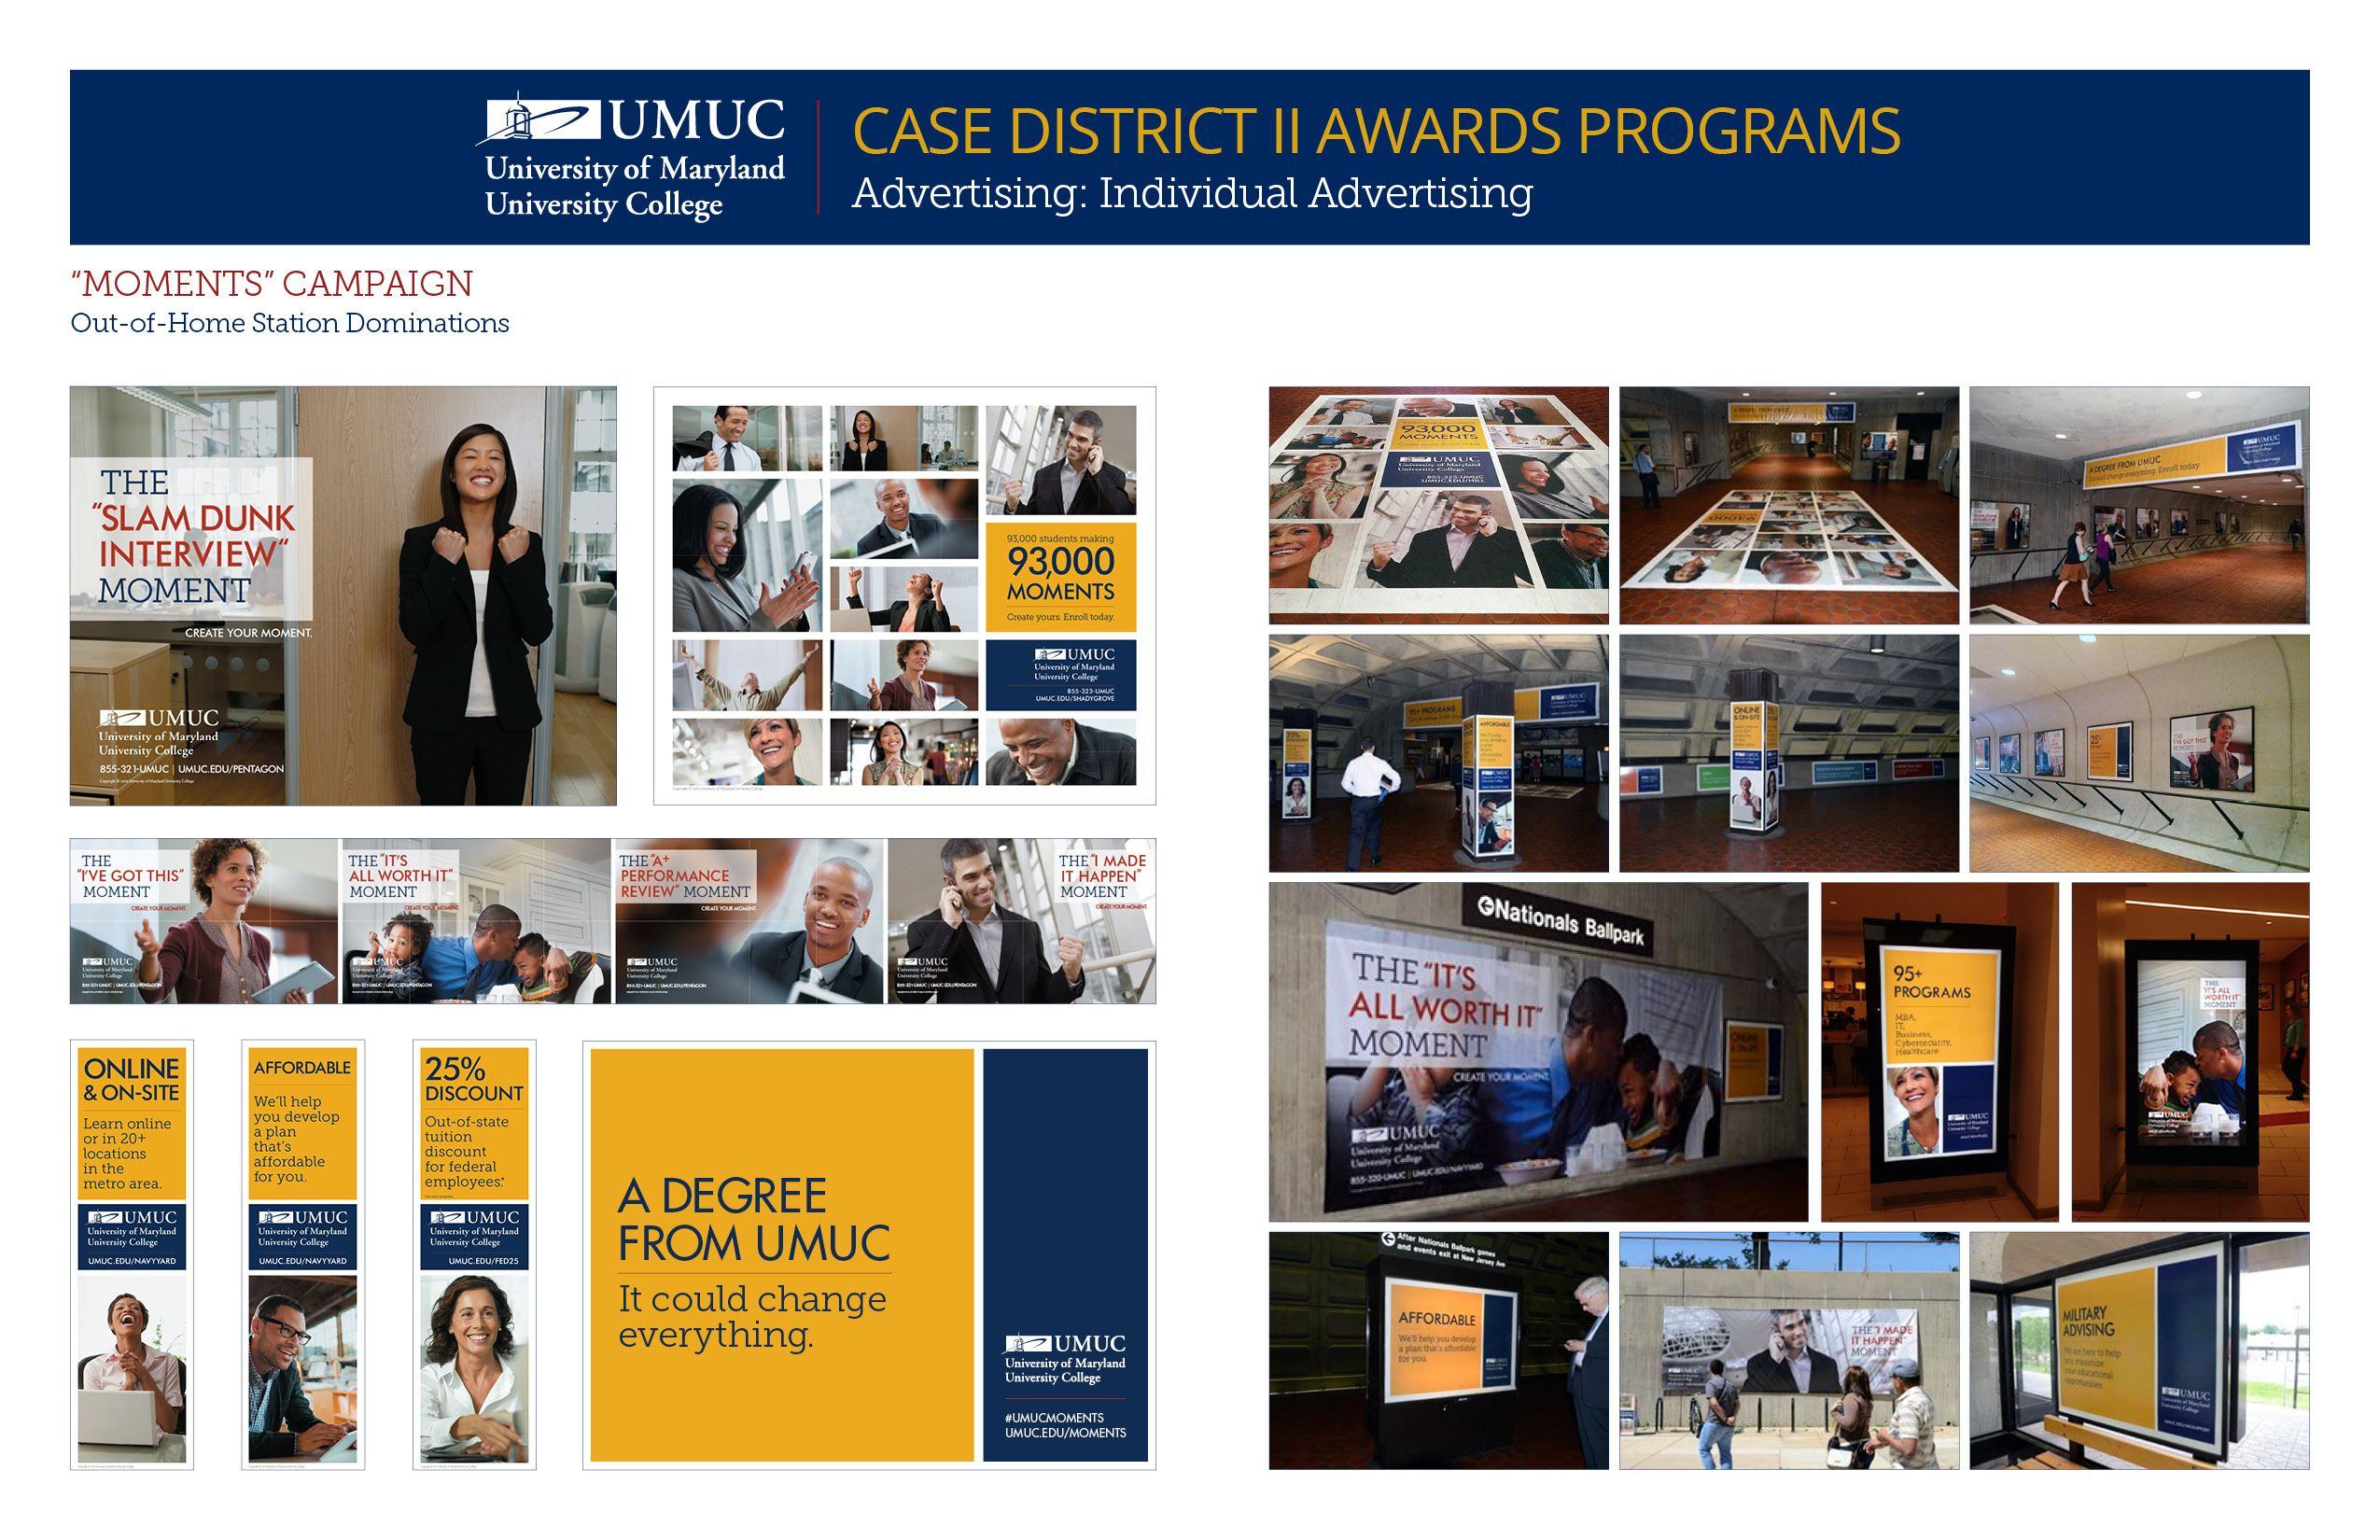 University Of Maryland University College Took Gold In Advertising Individual Advertising With T Online College Degrees University University Awards Program